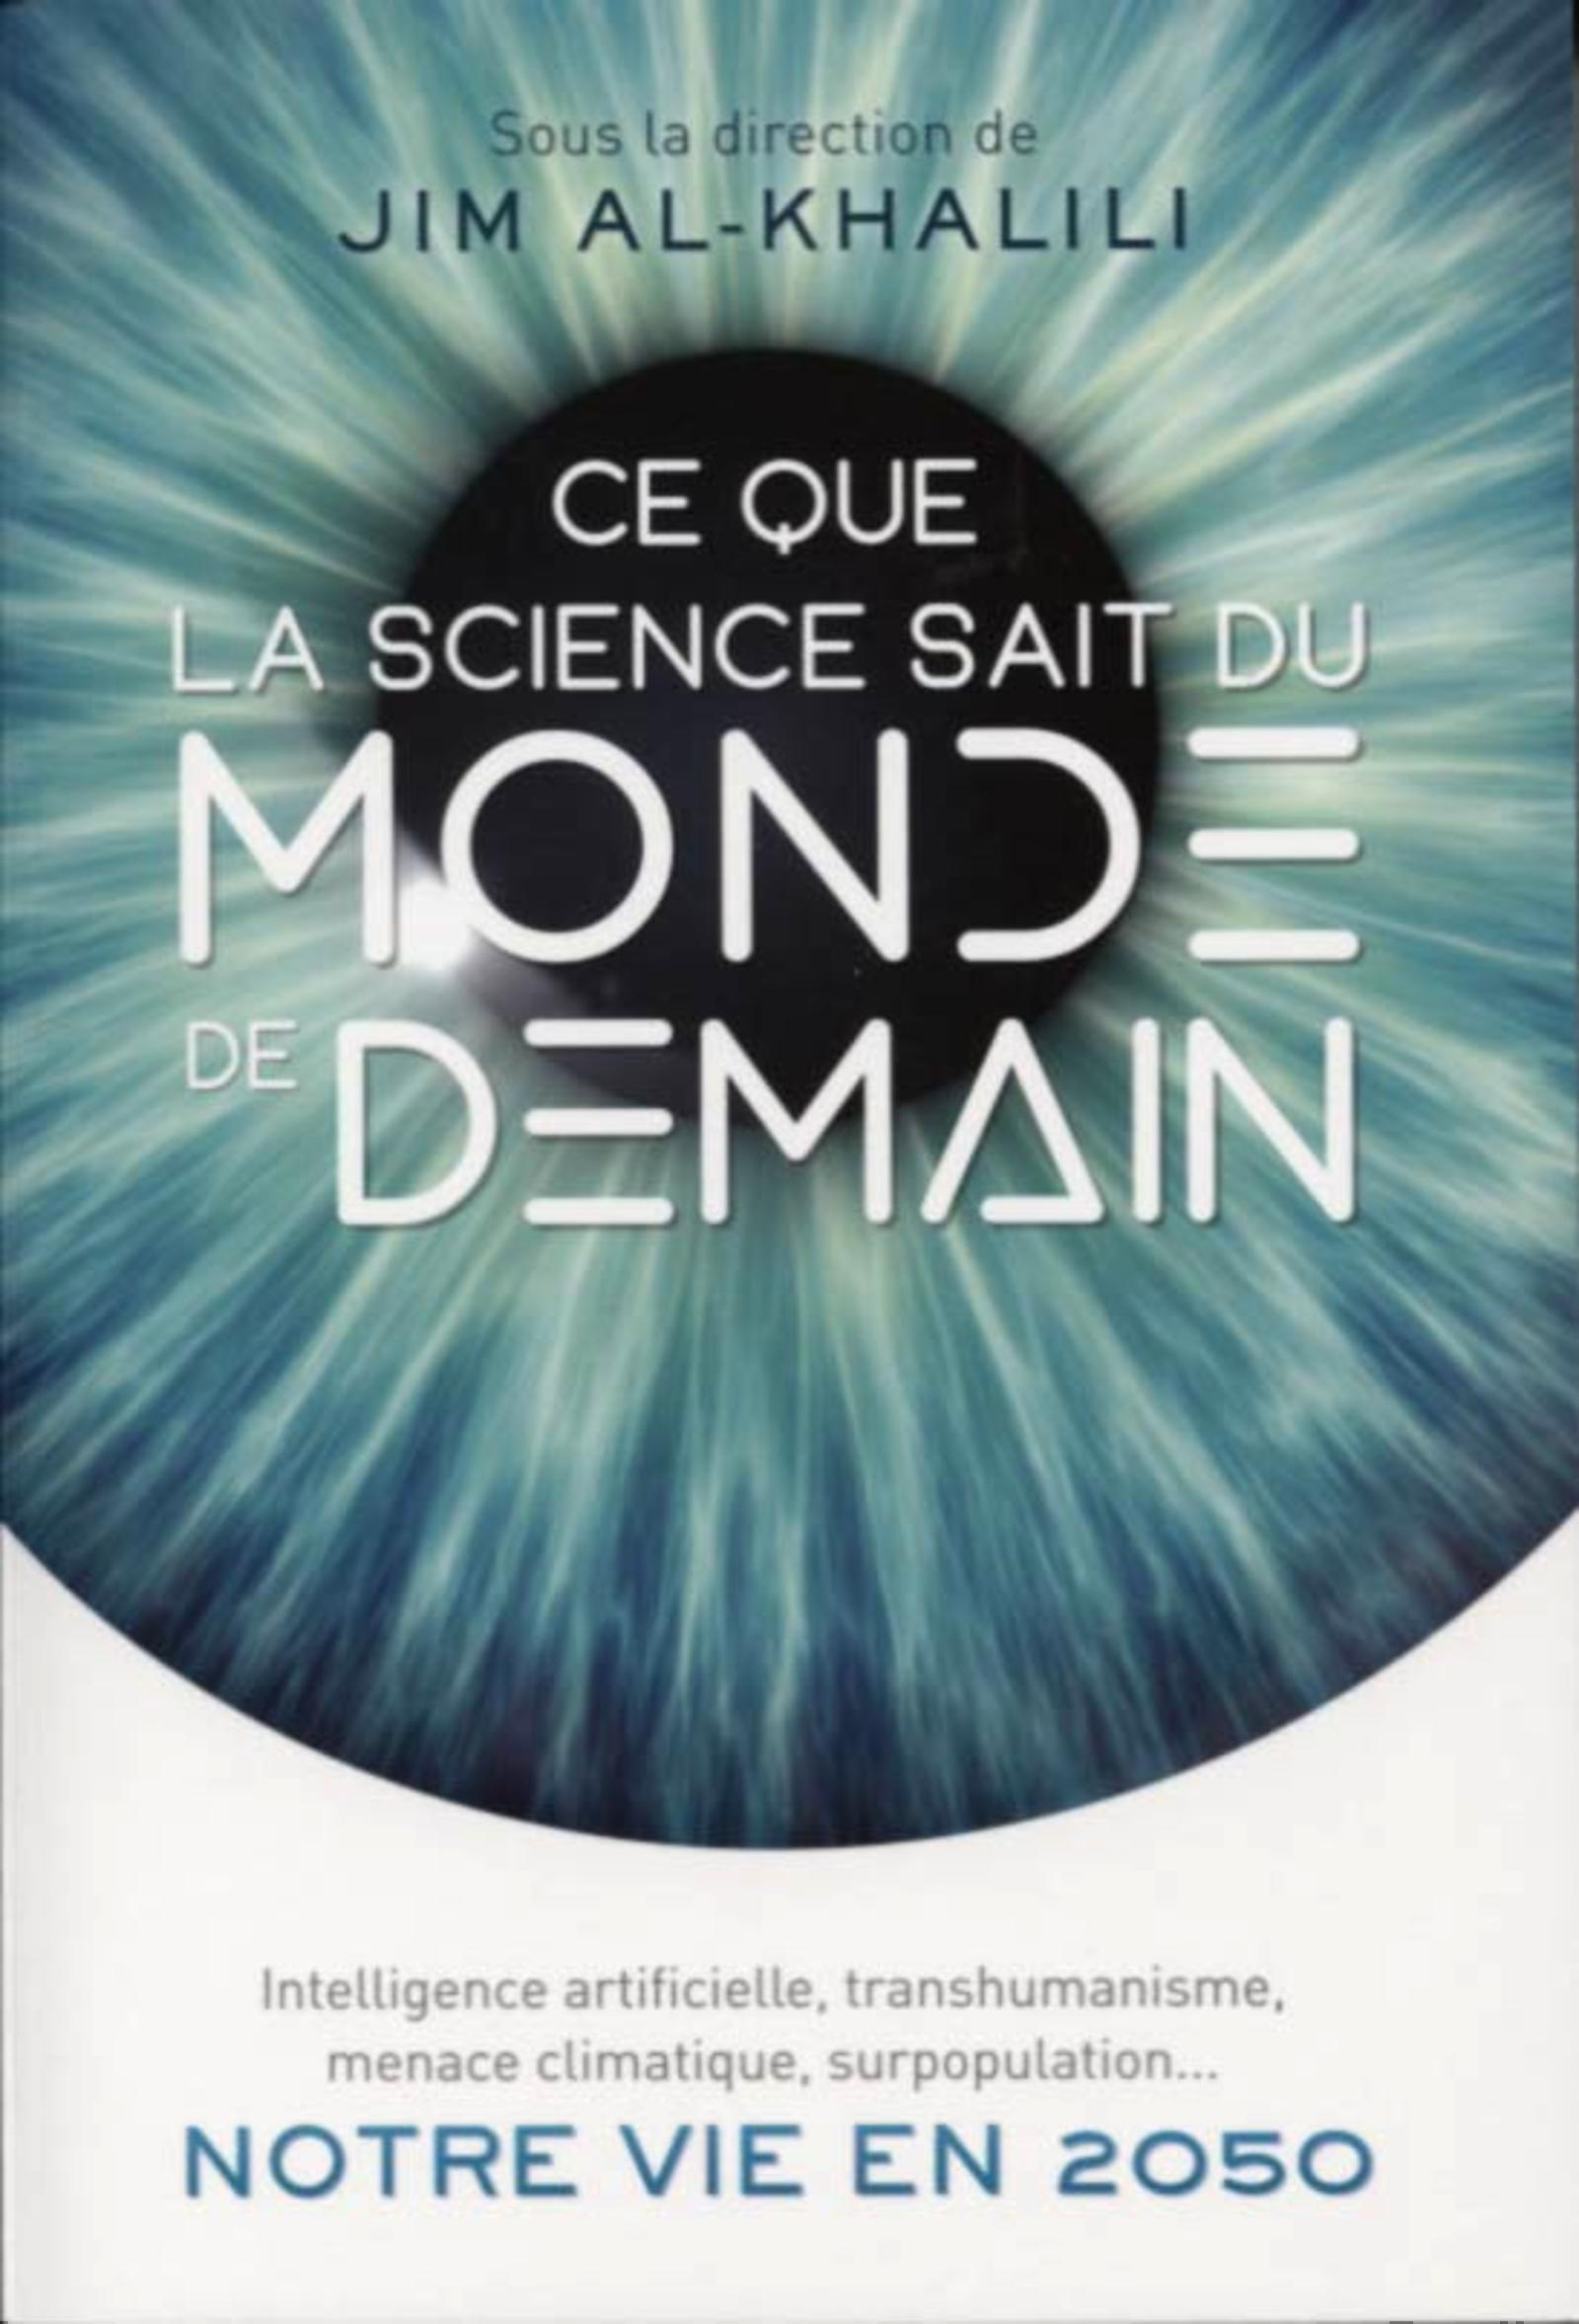 CE QUE LA SCIENCE SAIT DU MONDE DE DEMAIN - INTELLIGENCE ARTIFICIELLE TARNSHUMANISME MENACE CLIMATIQ